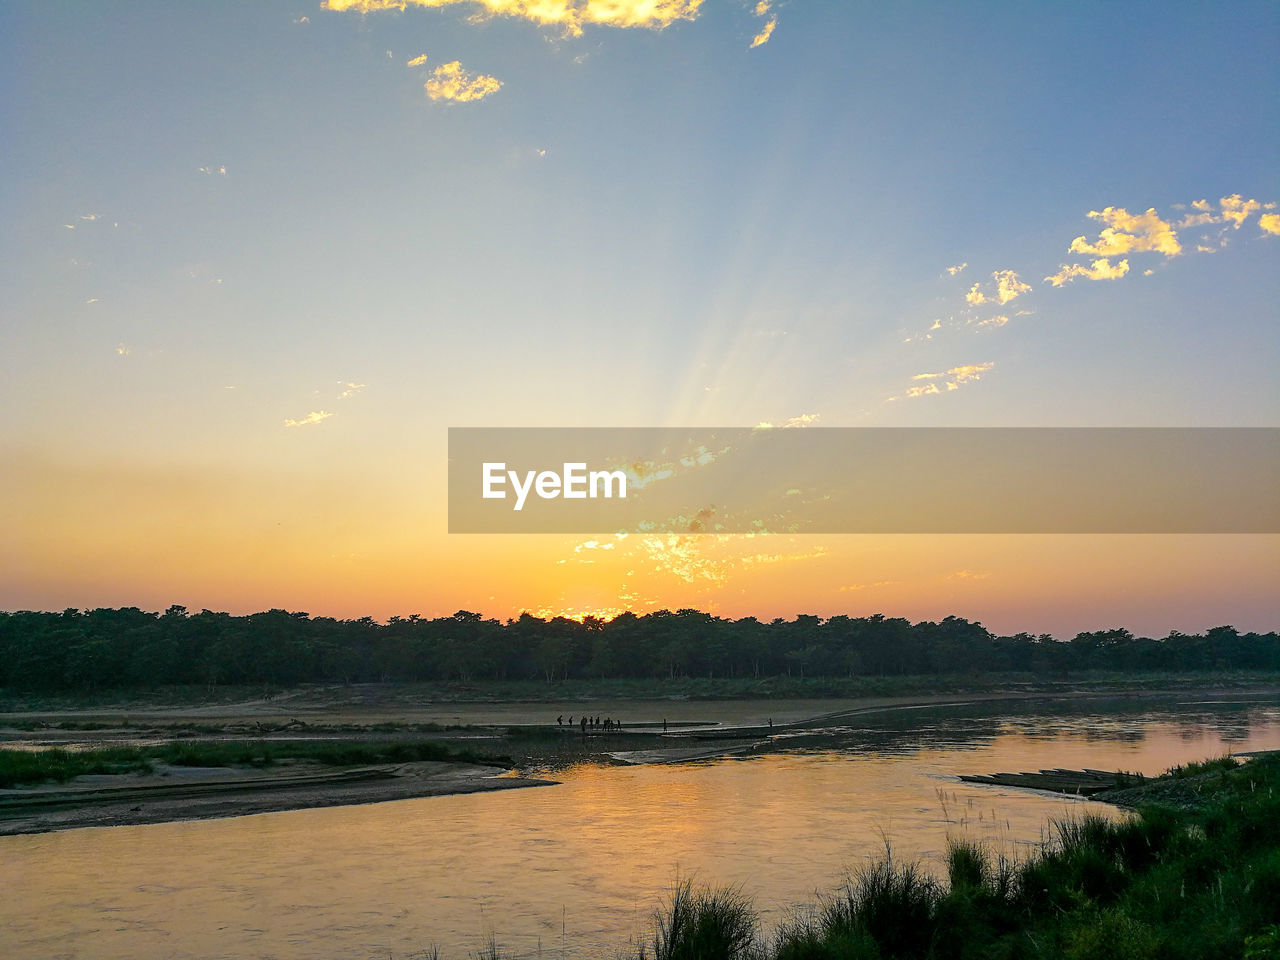 sunset, water, nature, beauty in nature, scenics, tranquil scene, orange color, reflection, sky, river, tranquility, tree, sun, no people, outdoors, sunlight, landscape, day